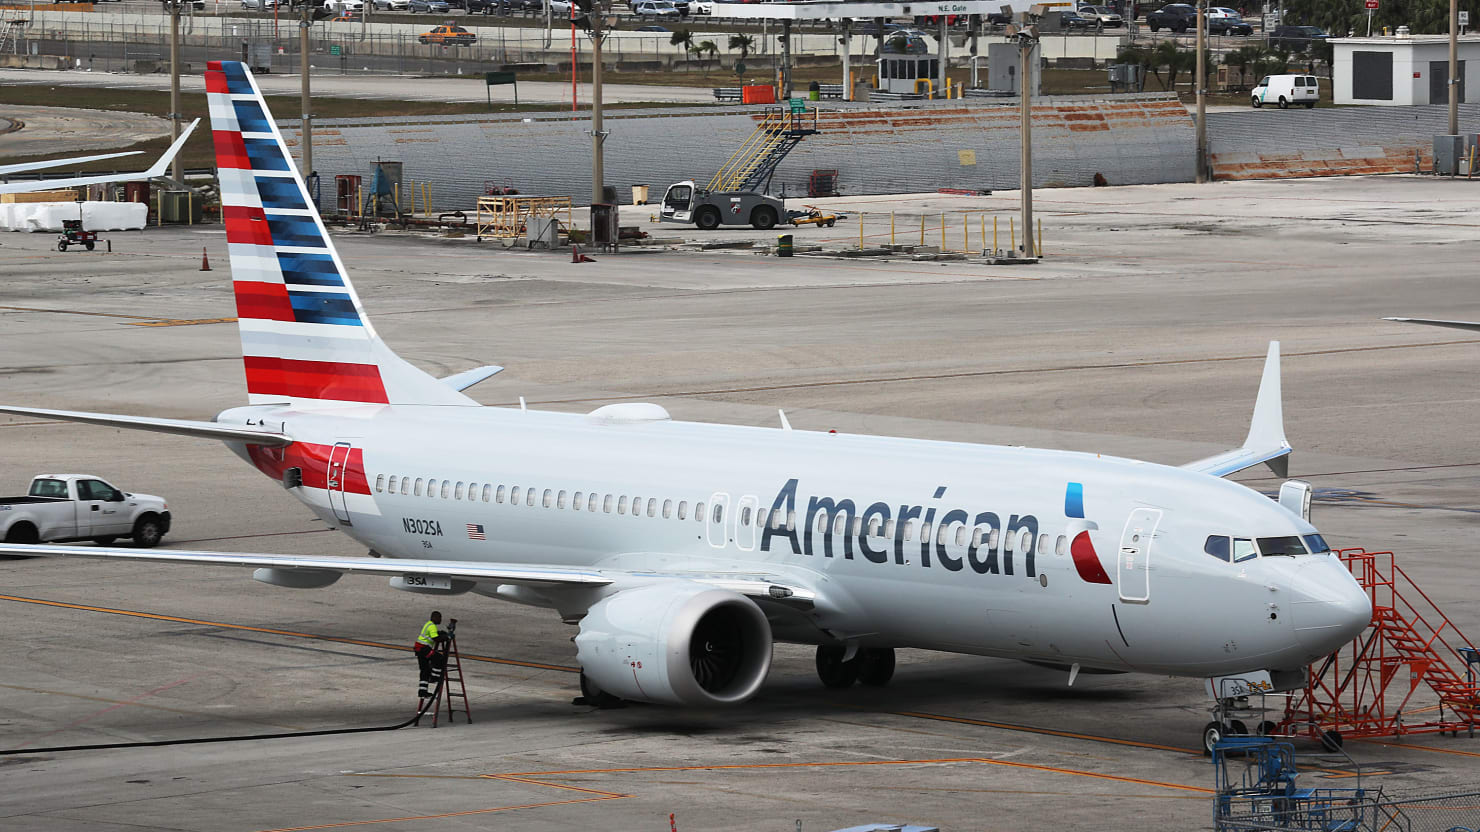 American Airlines Cancels Boeing 737 Max Flights Through August 19